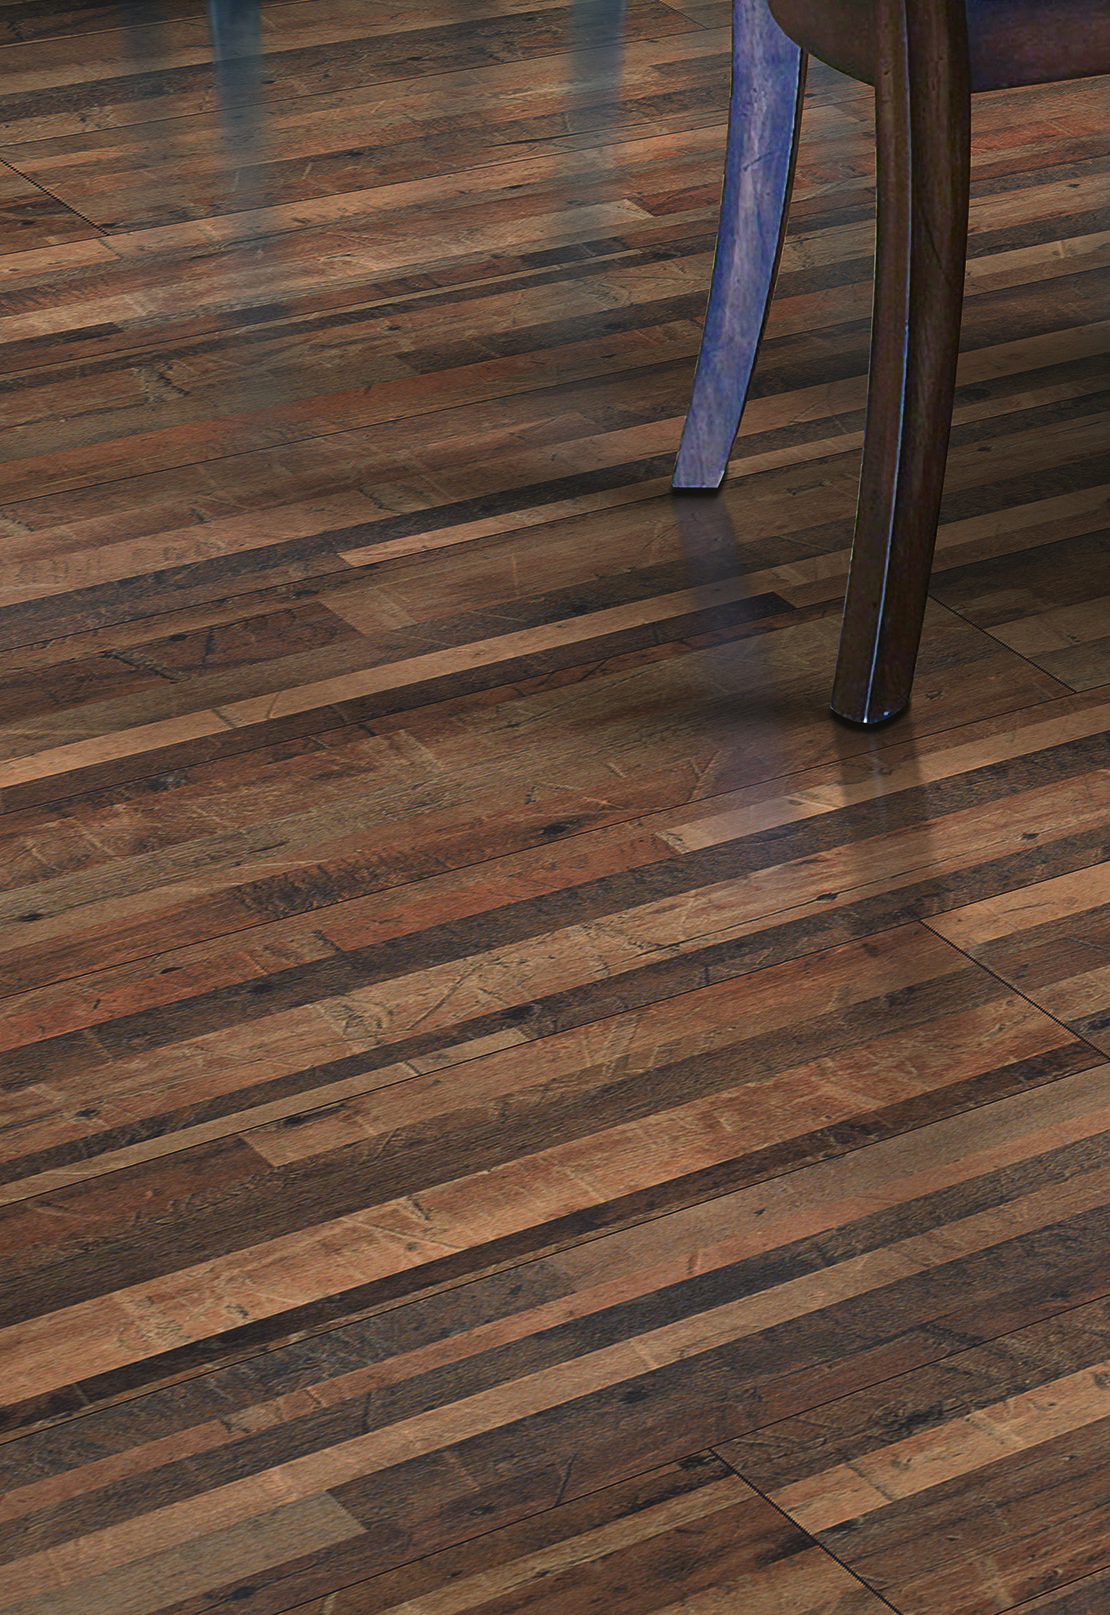 Remarkably Realistic Liberty Valley Laminate Flooring Provides A Look You Ll Love At An Affordable Price Comp Laminate Flooring Floor Rugs Flooring